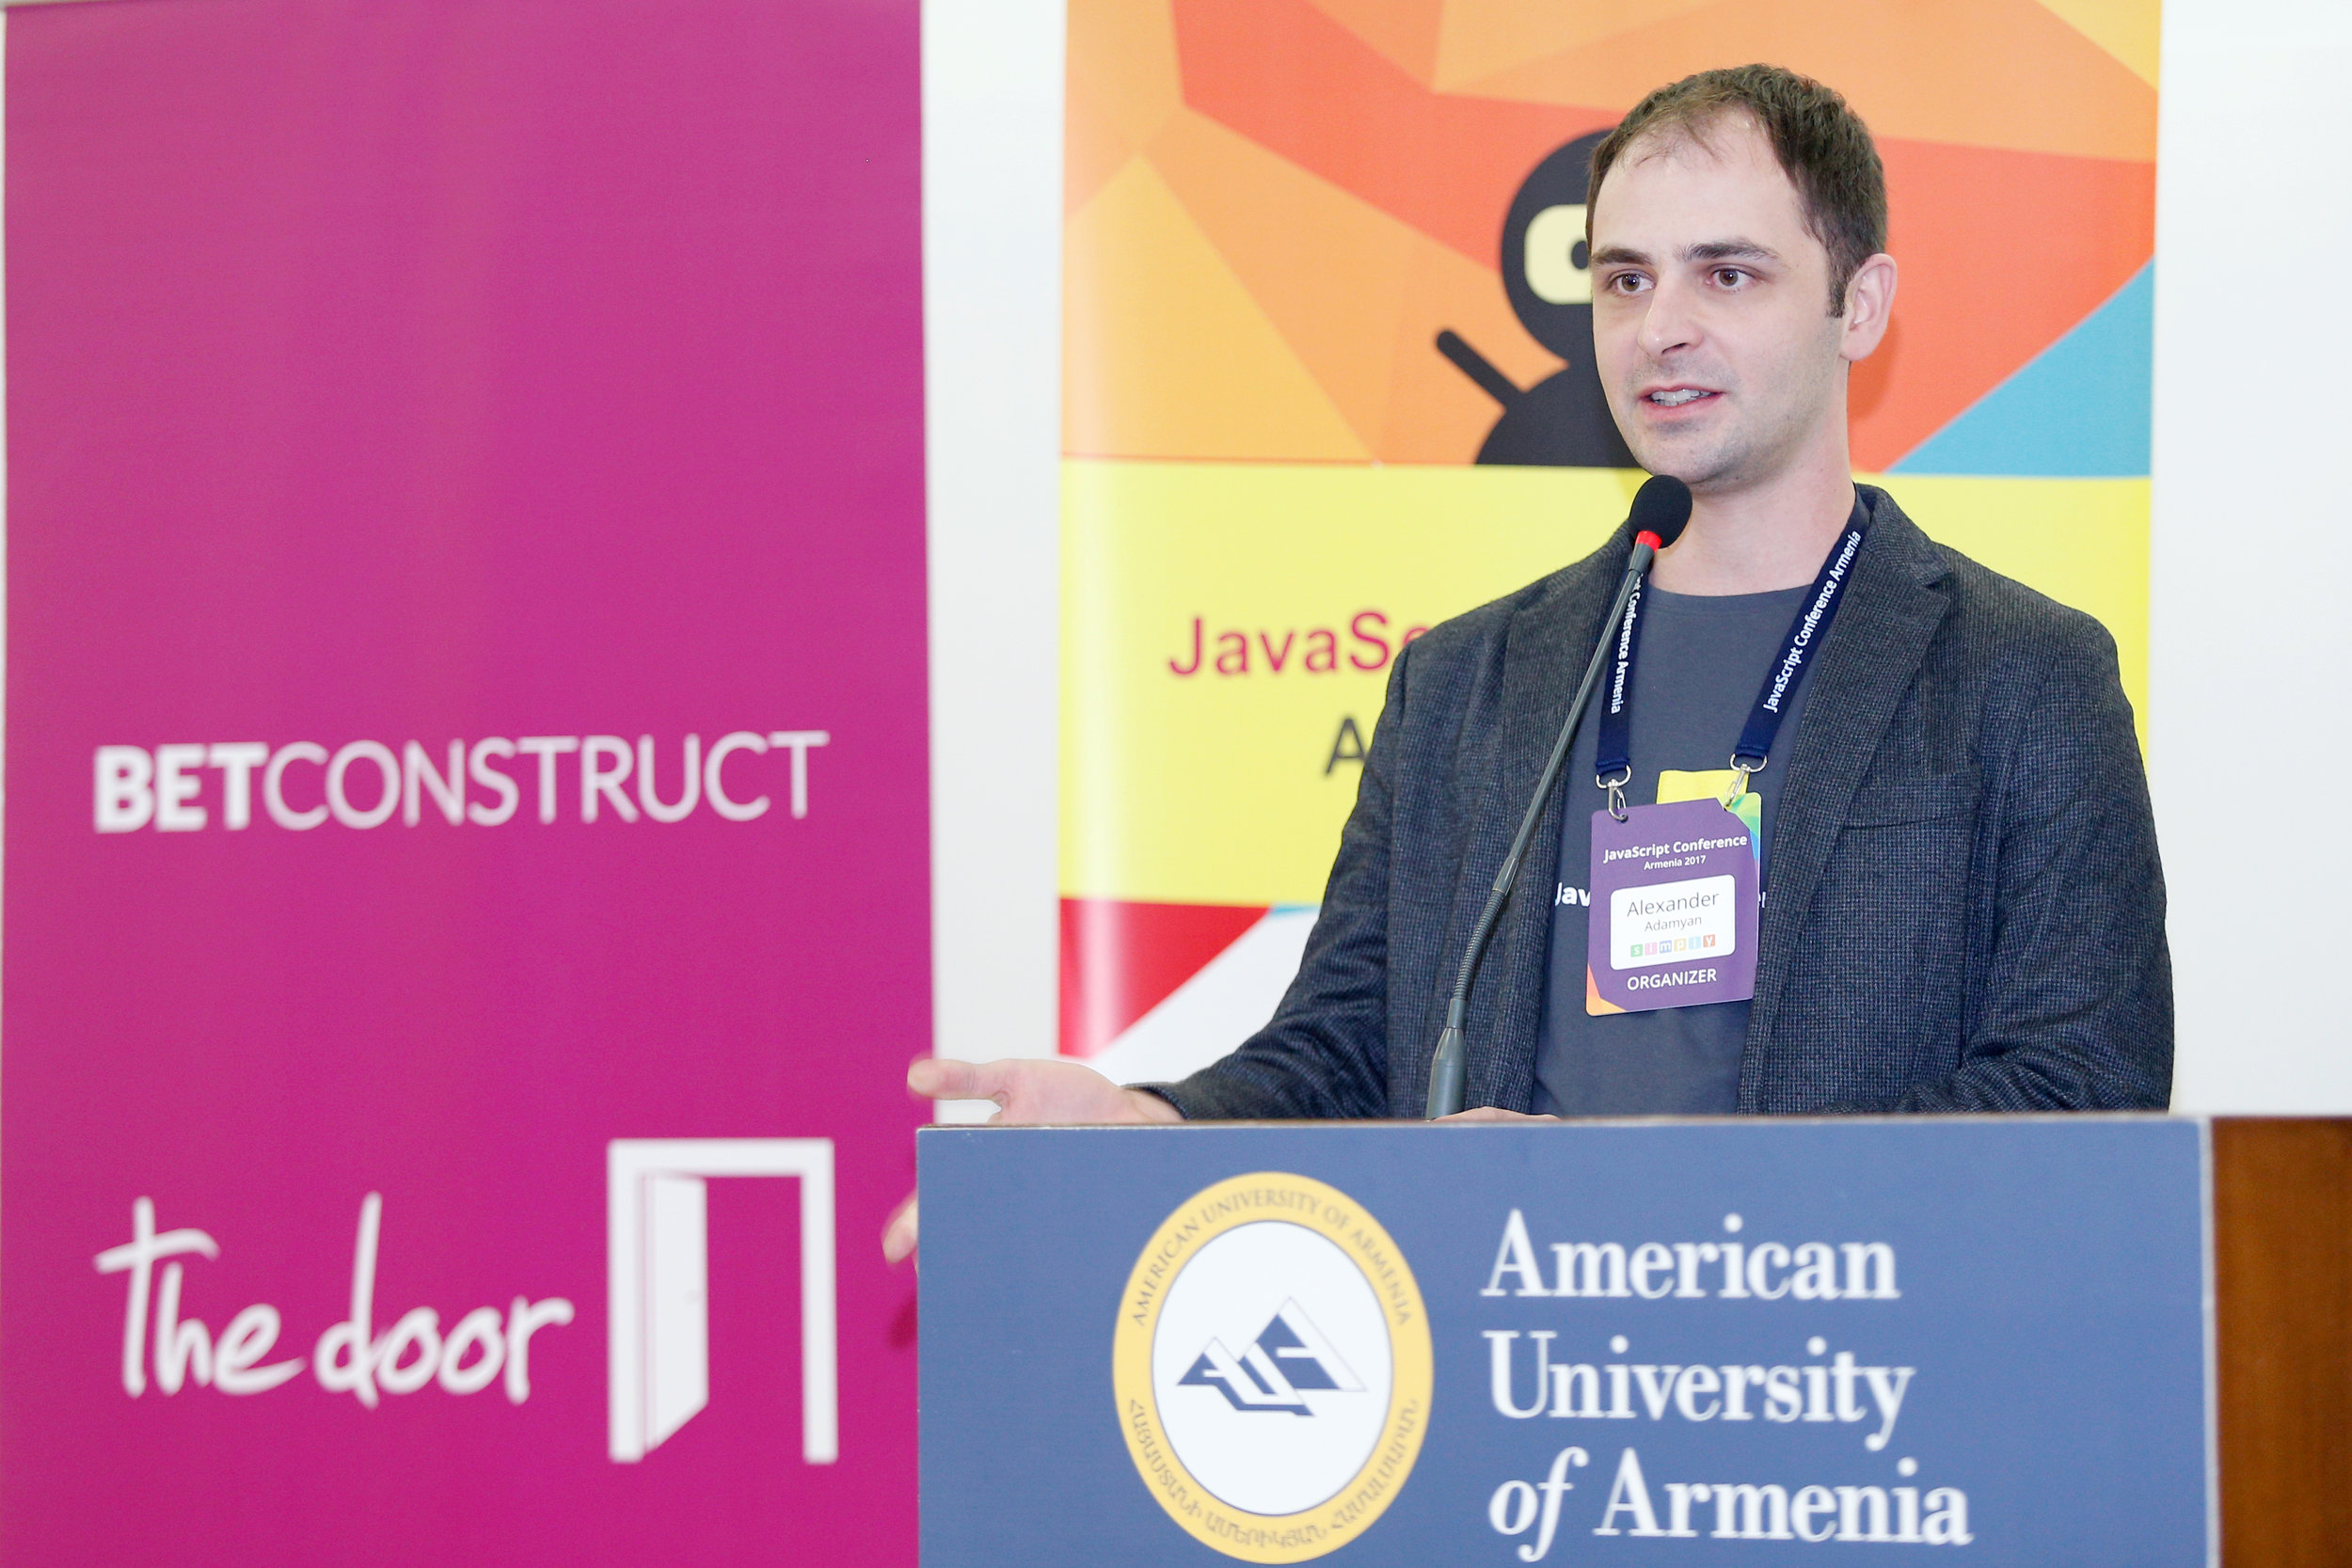 Simply Co-founder Alex hosting JS Conf Armenia